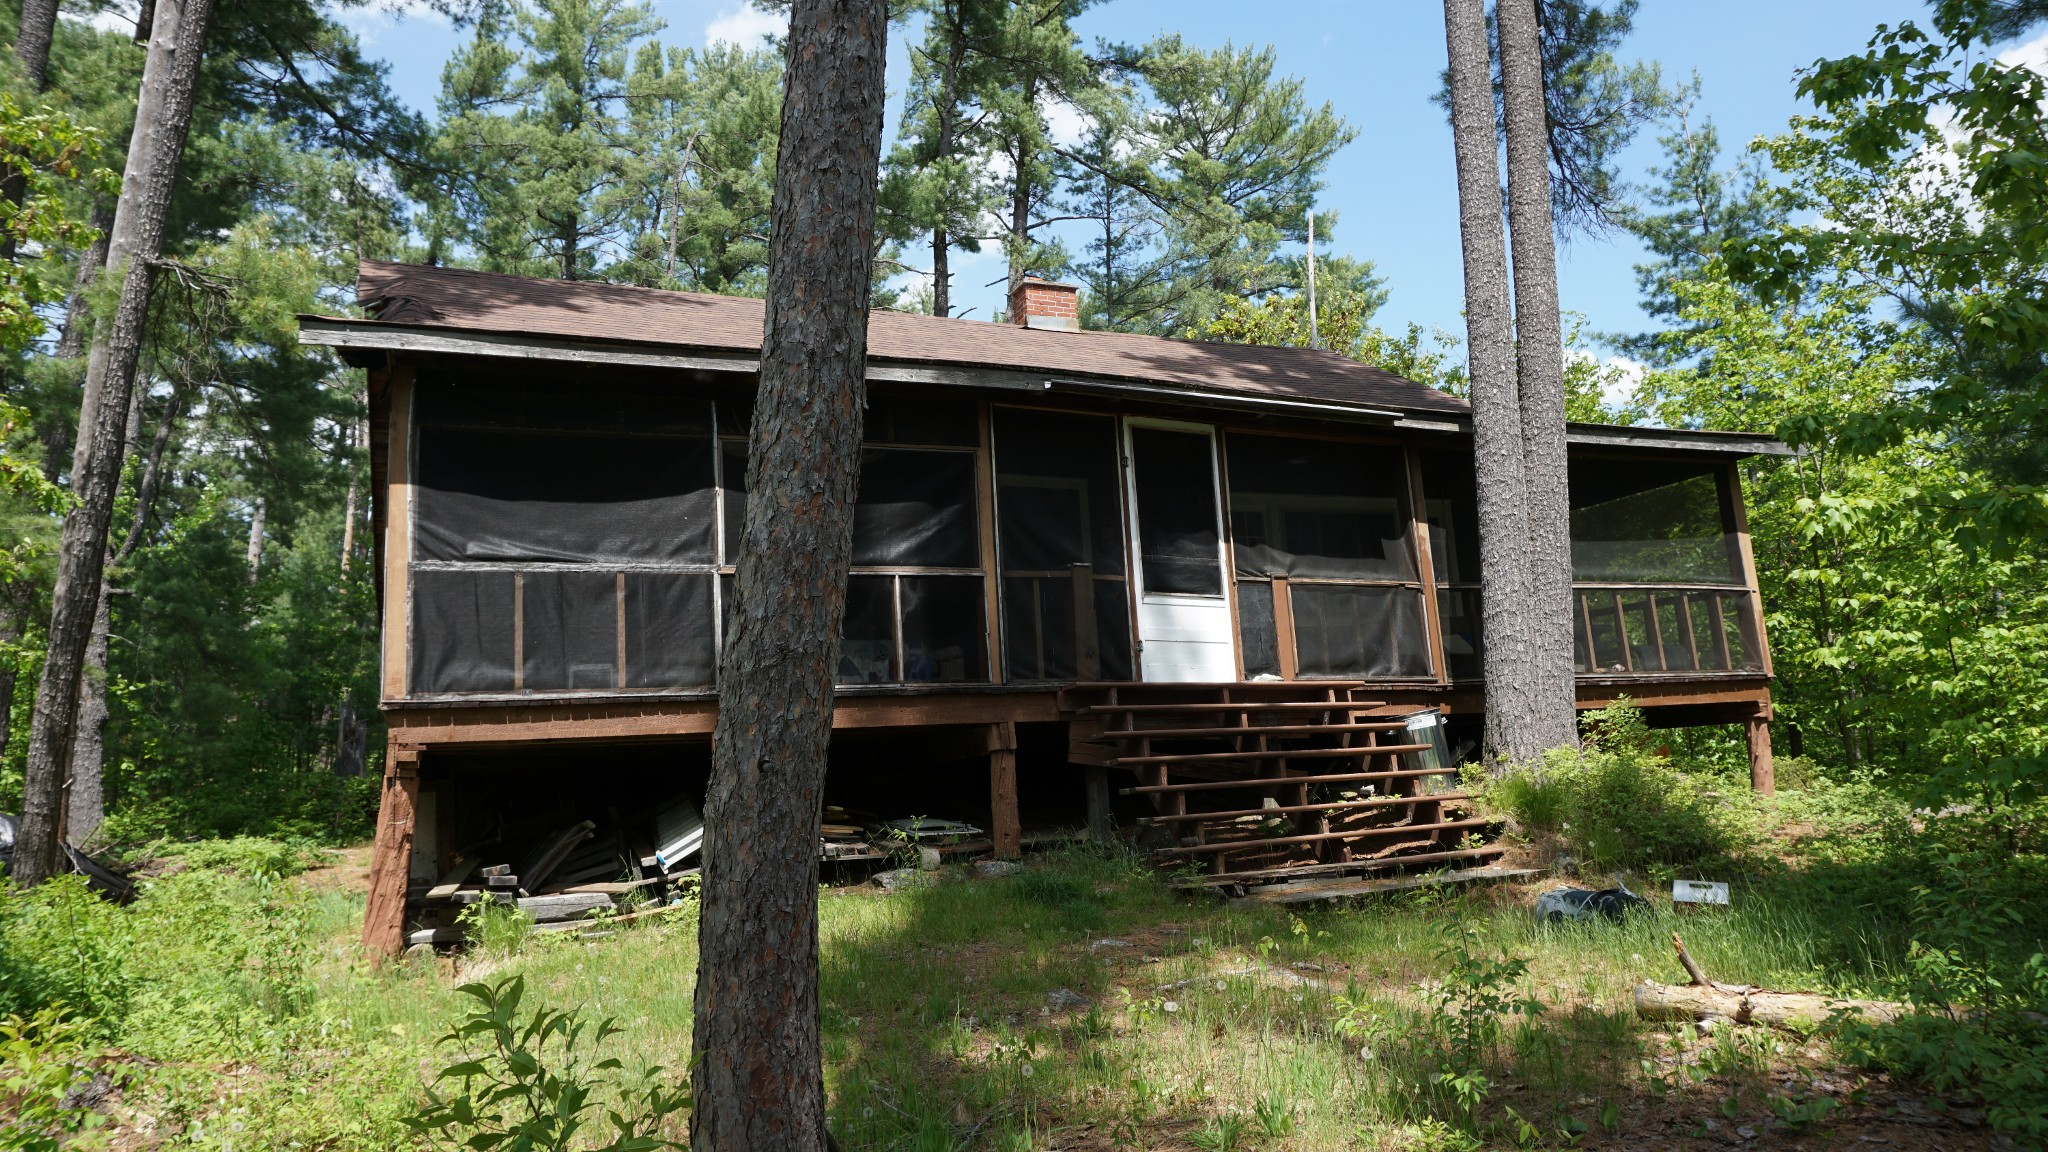 FEATURED LISTING: Algonquin Park Township of Stratton, District of Nippissing